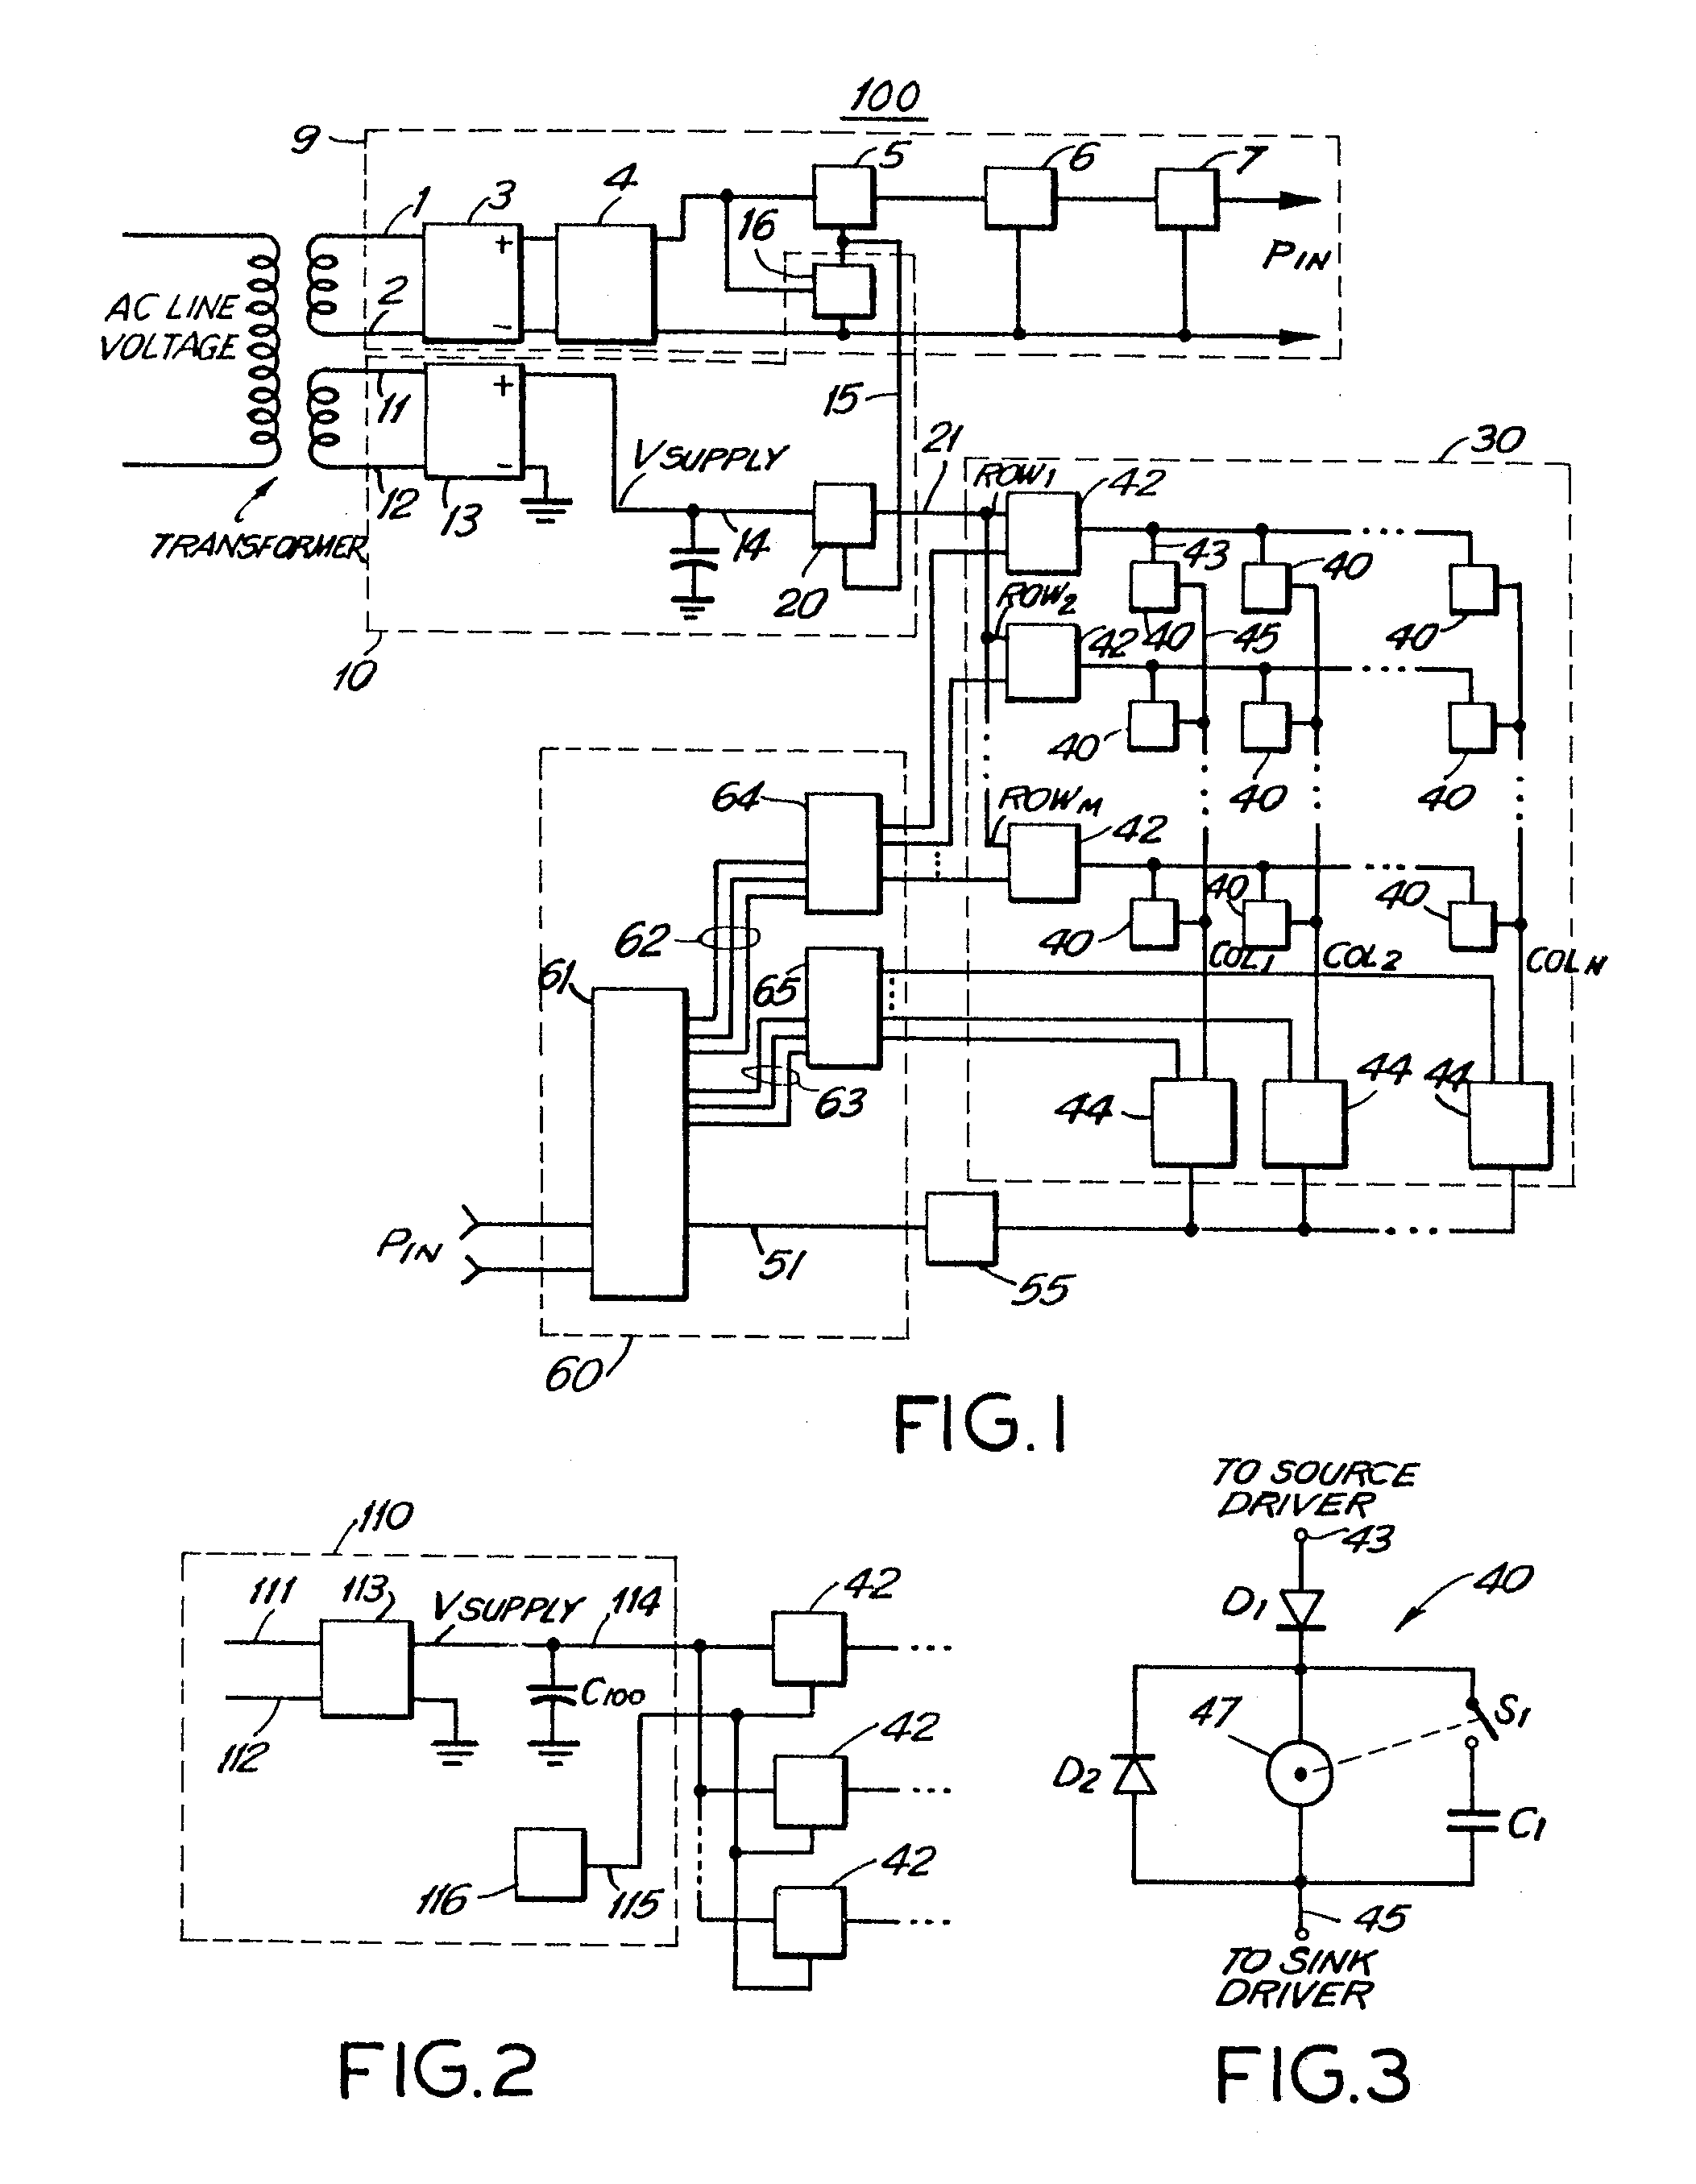 barber pole wiring diagram barber s pole wiring diagram